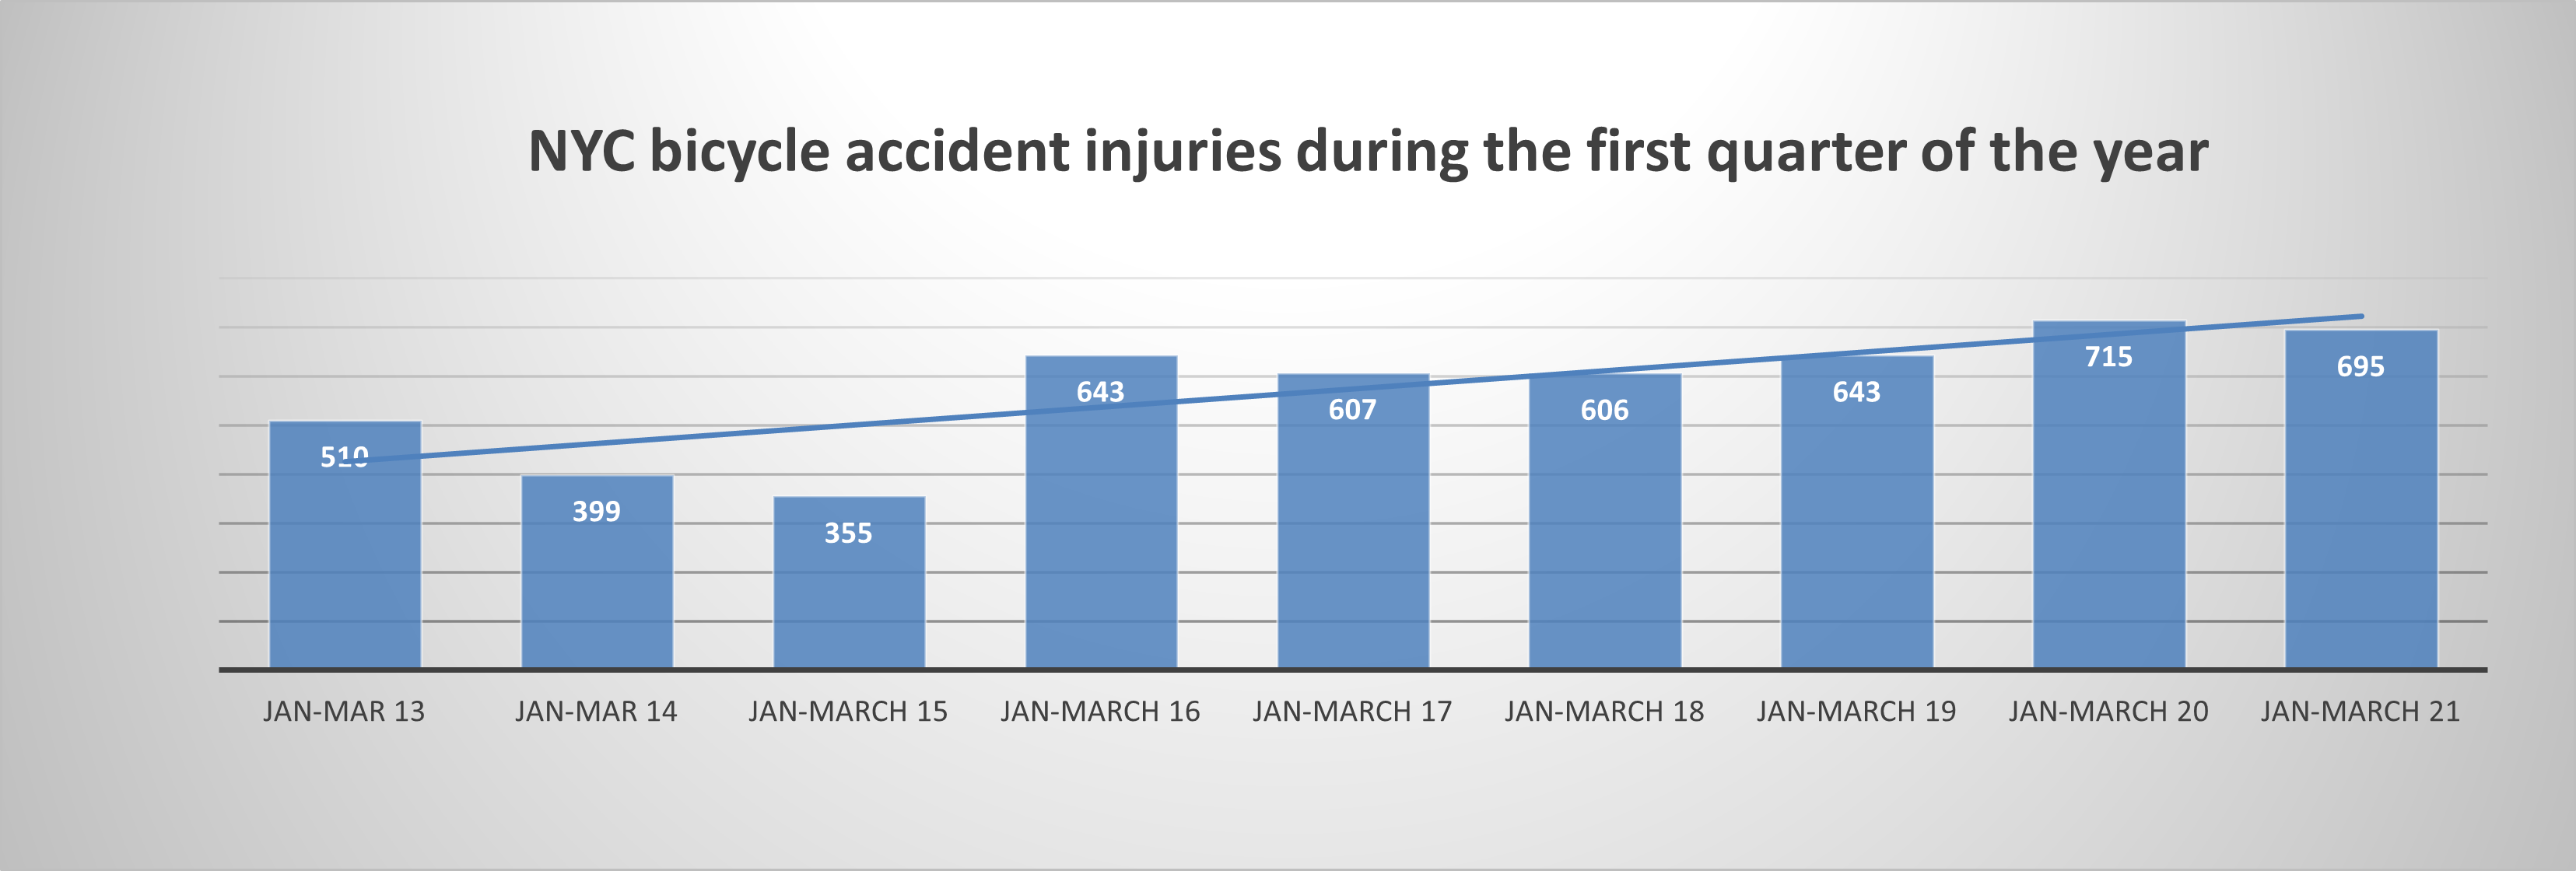 Bicycle Accident Injuries In New York Q1 2021